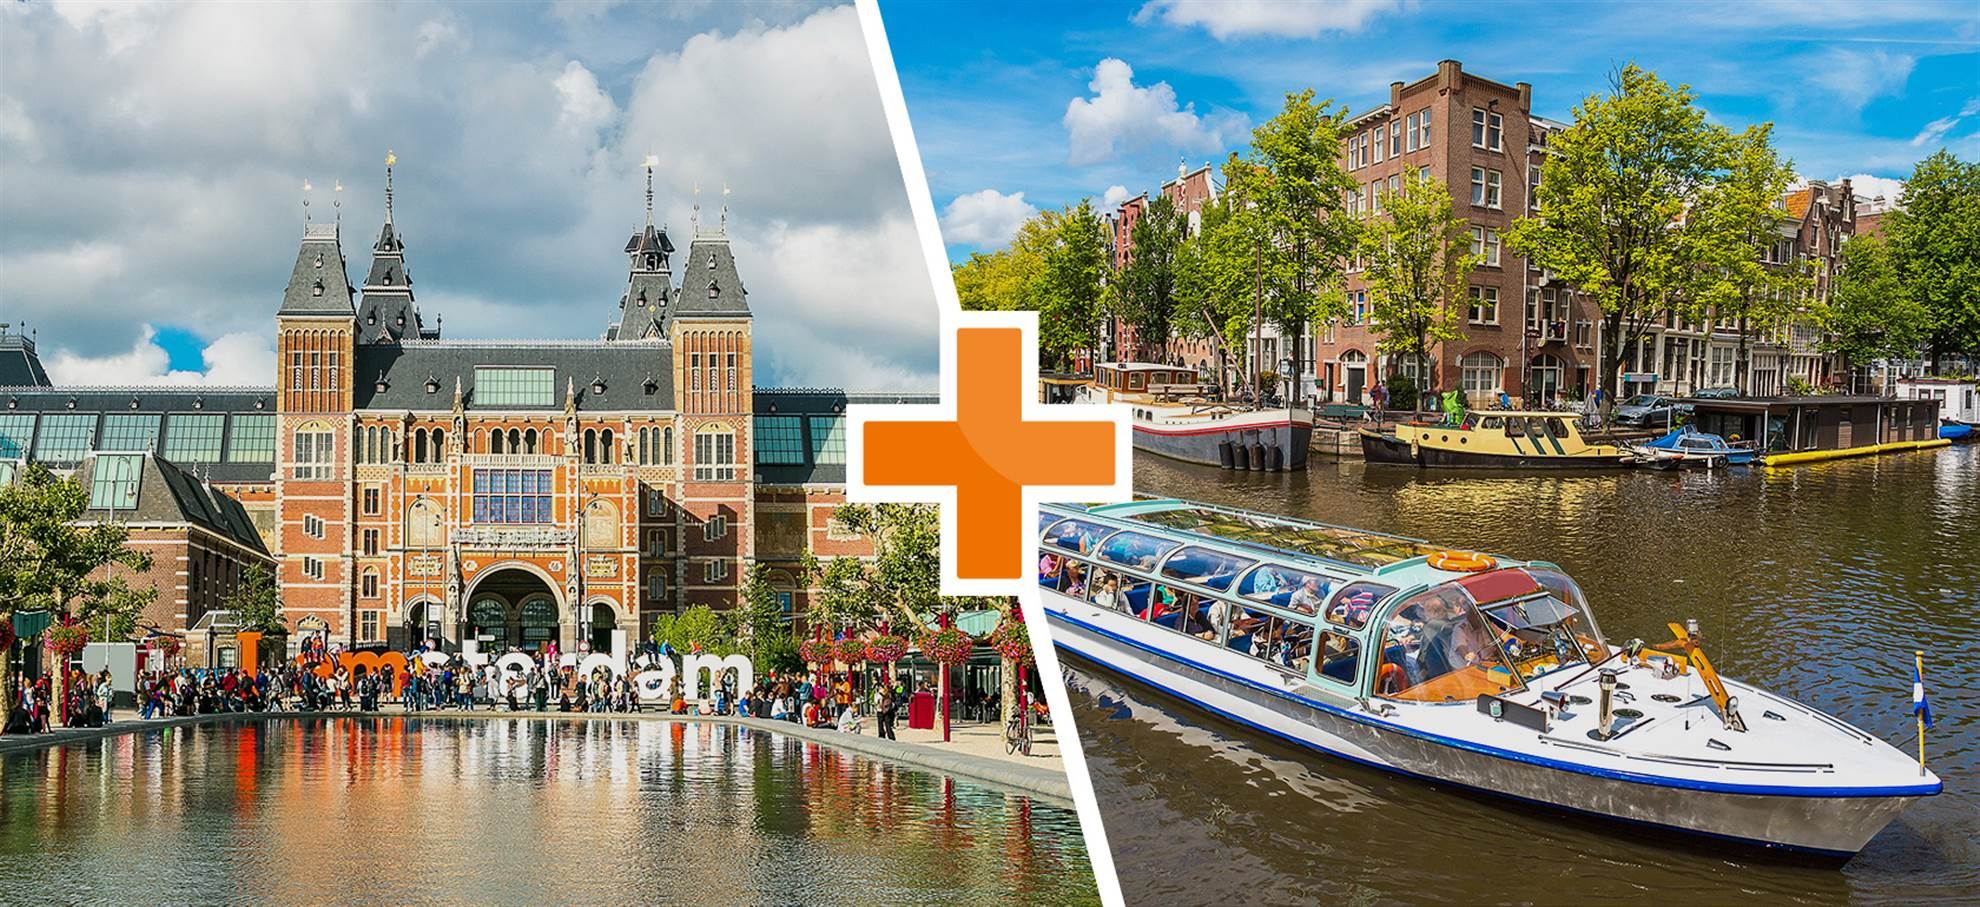 Ticket Rijksmuseum & Canal Cruise